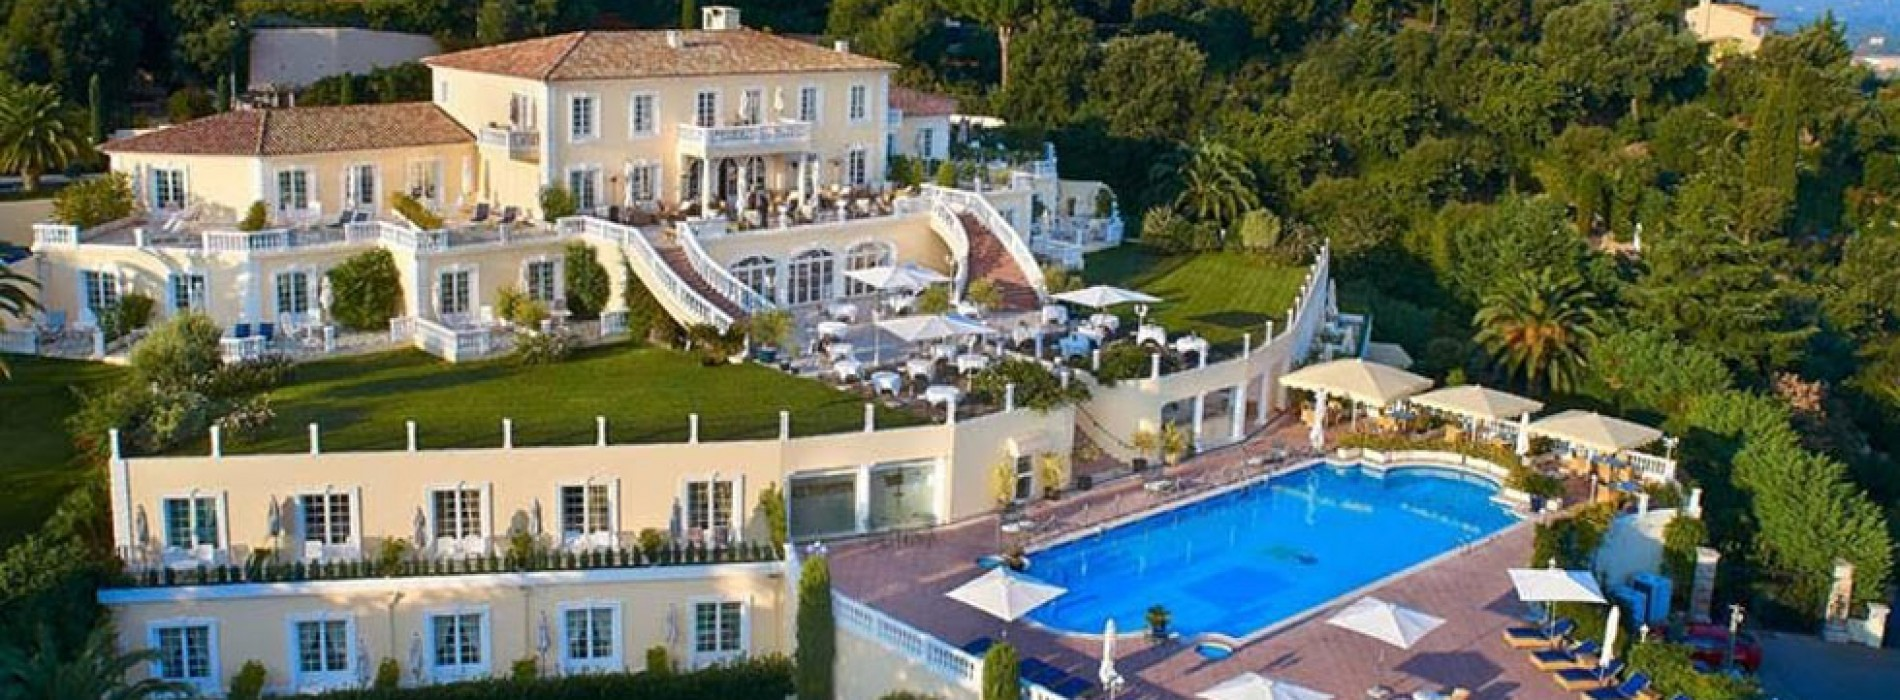 Althoff hotel villa belrose in saint tropez joins small for Best small hotels of the world